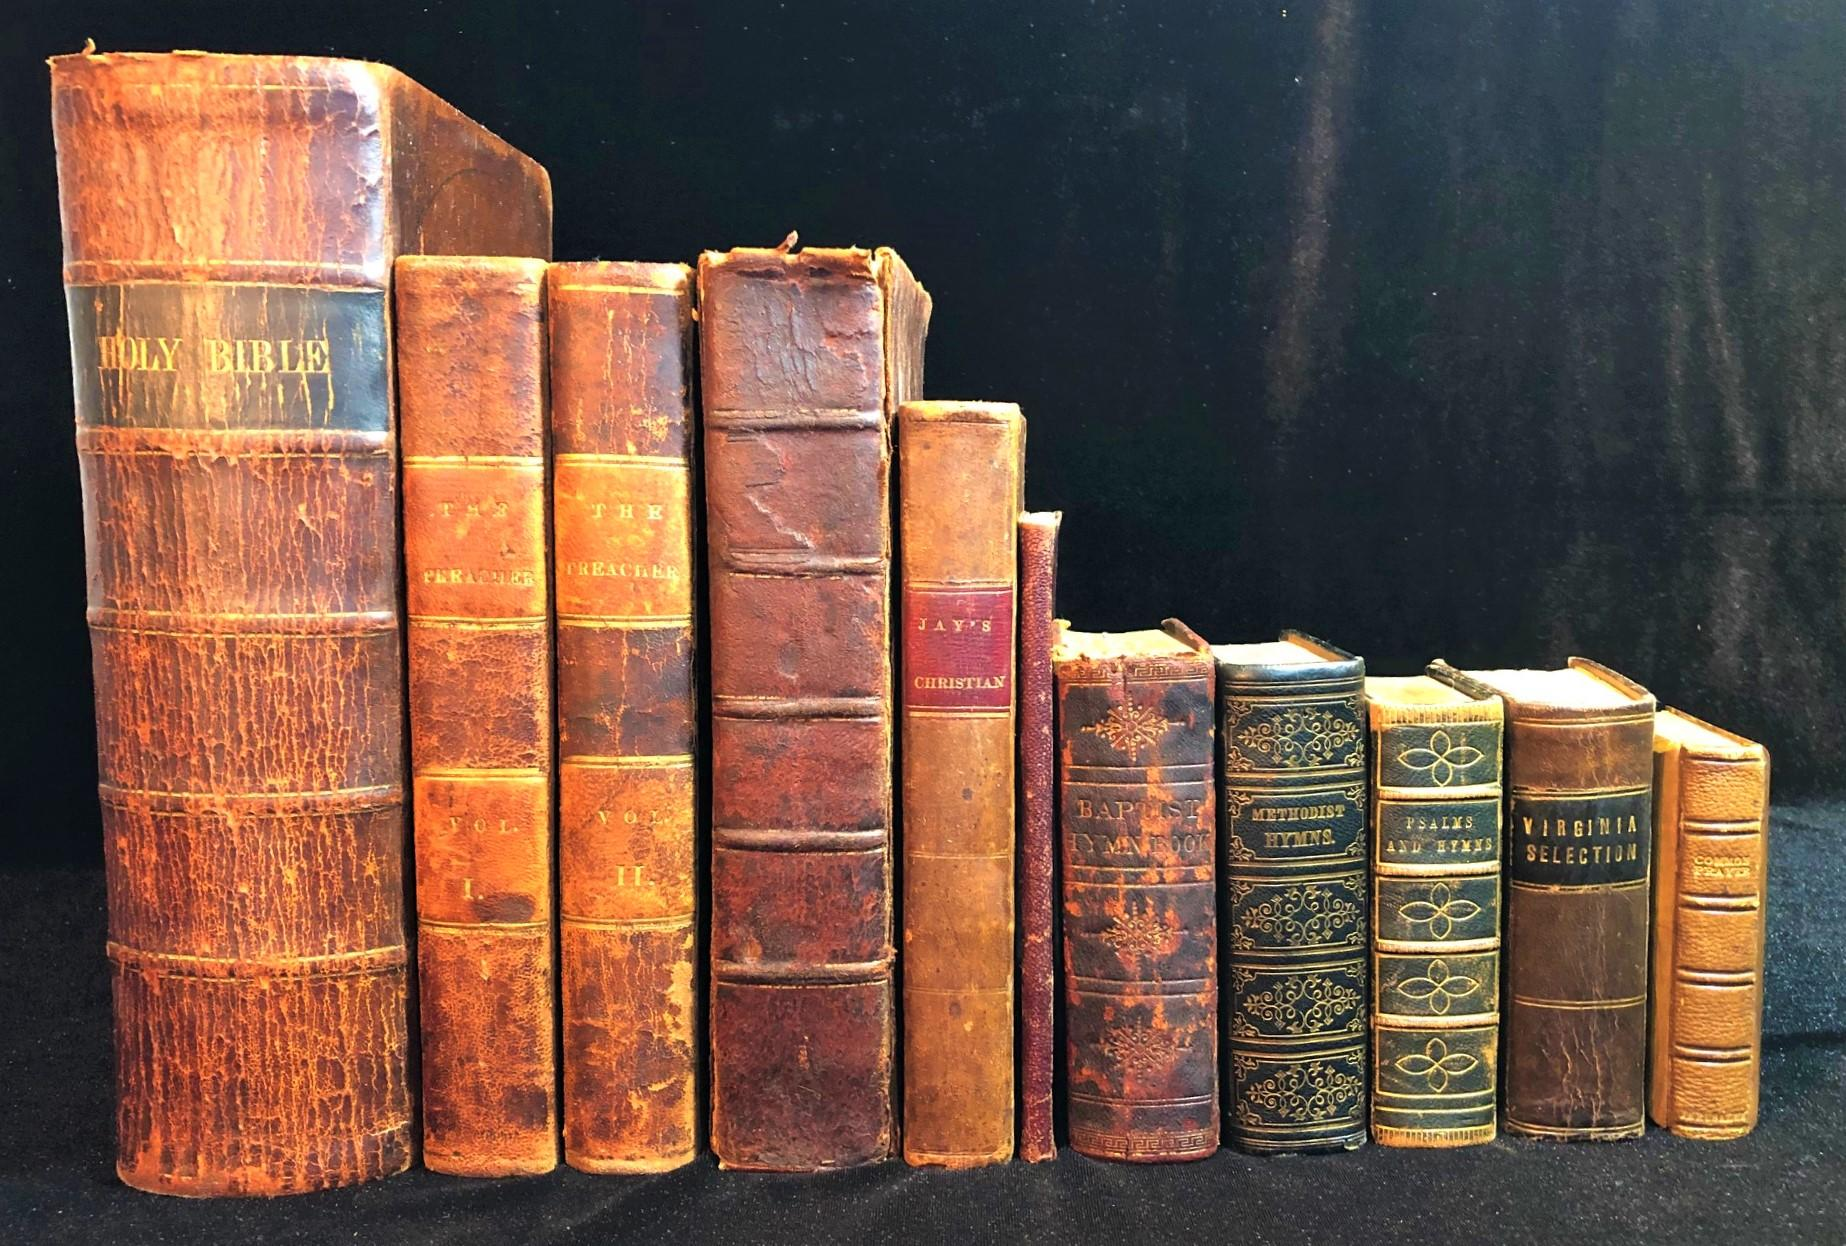 LEATHERBOUND CHRISTIAN RELIGIOUS BOOKS FROM THE 1800s, 11 VOLUMES